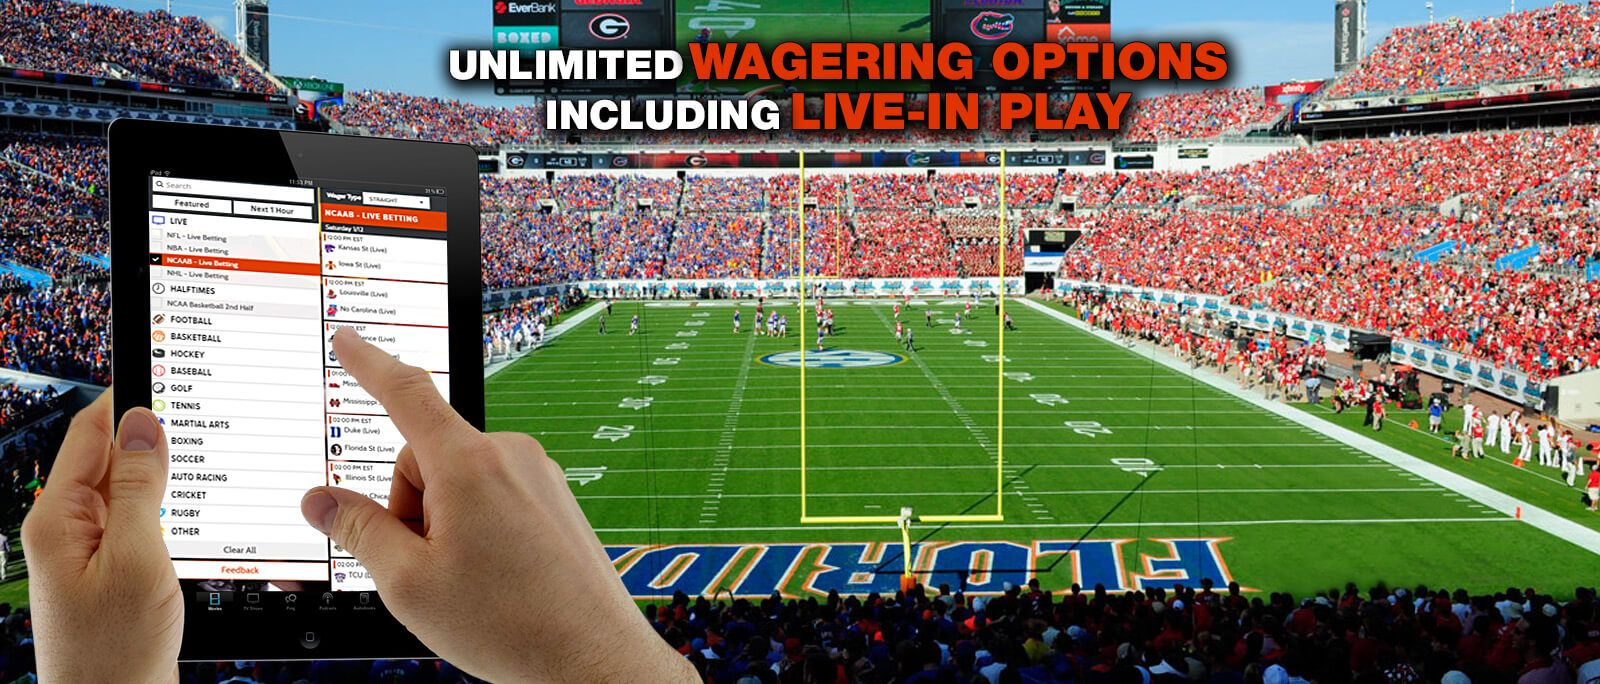 Unlimited wagering